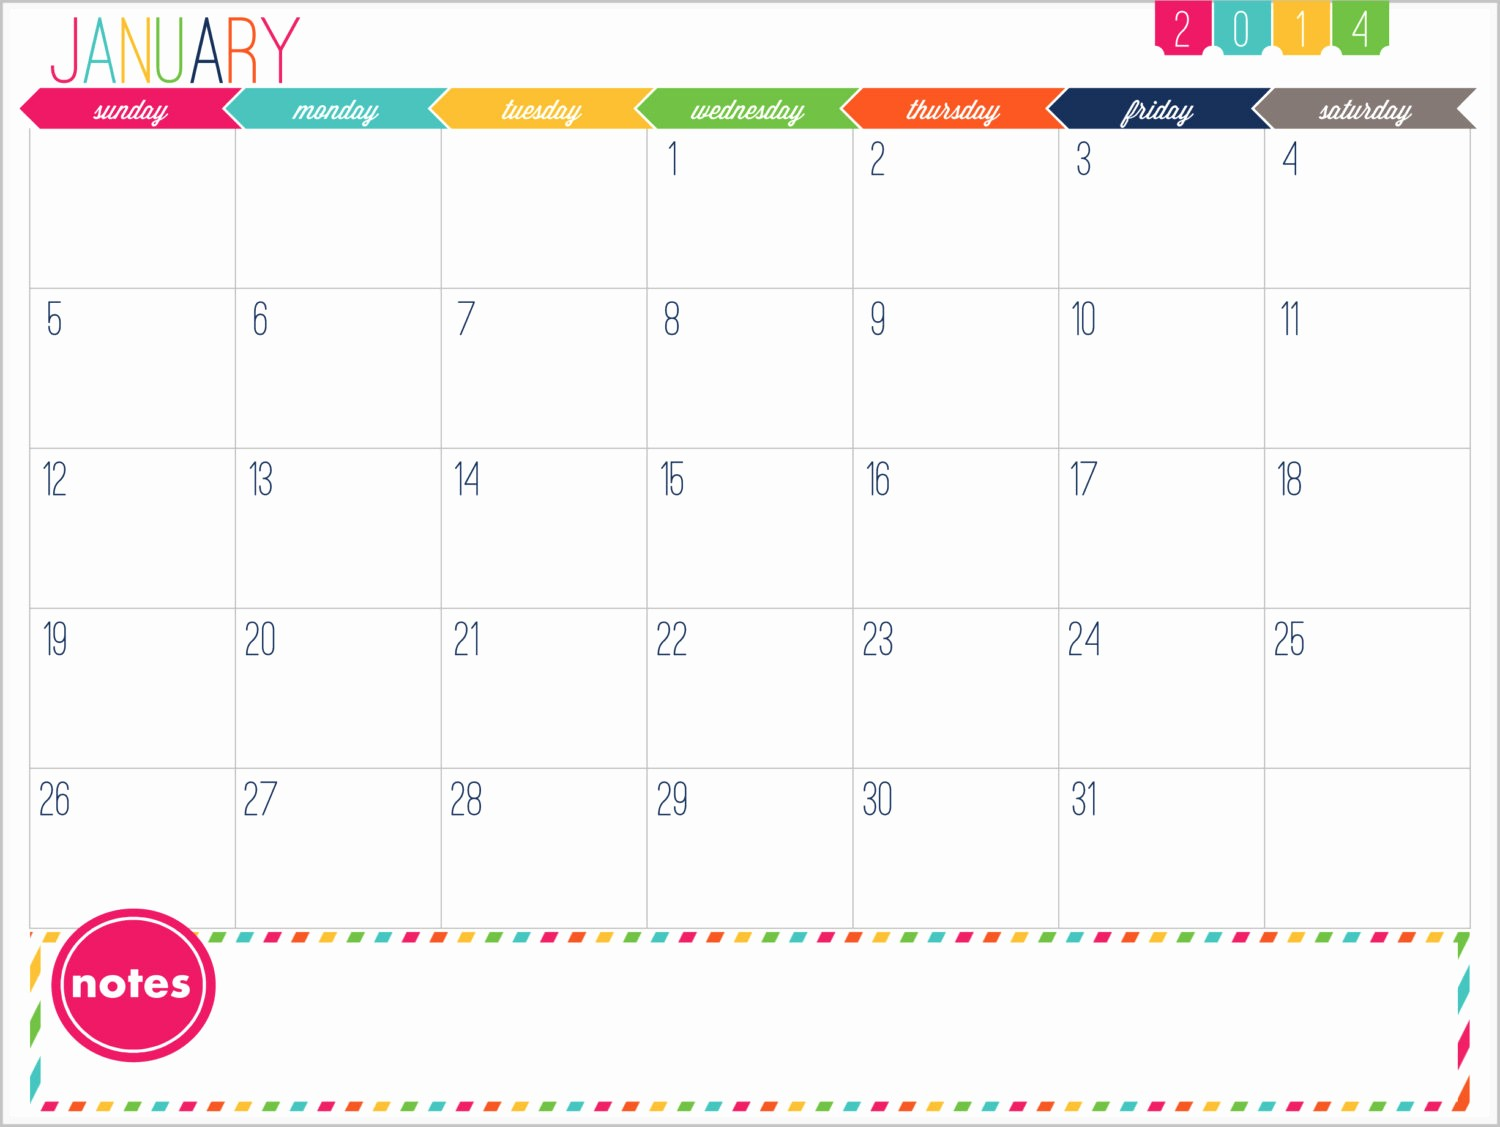 Free Printable 12 Month Calendar Best Of 12 Month Calendar Printable Prefilled for 2014 Instant